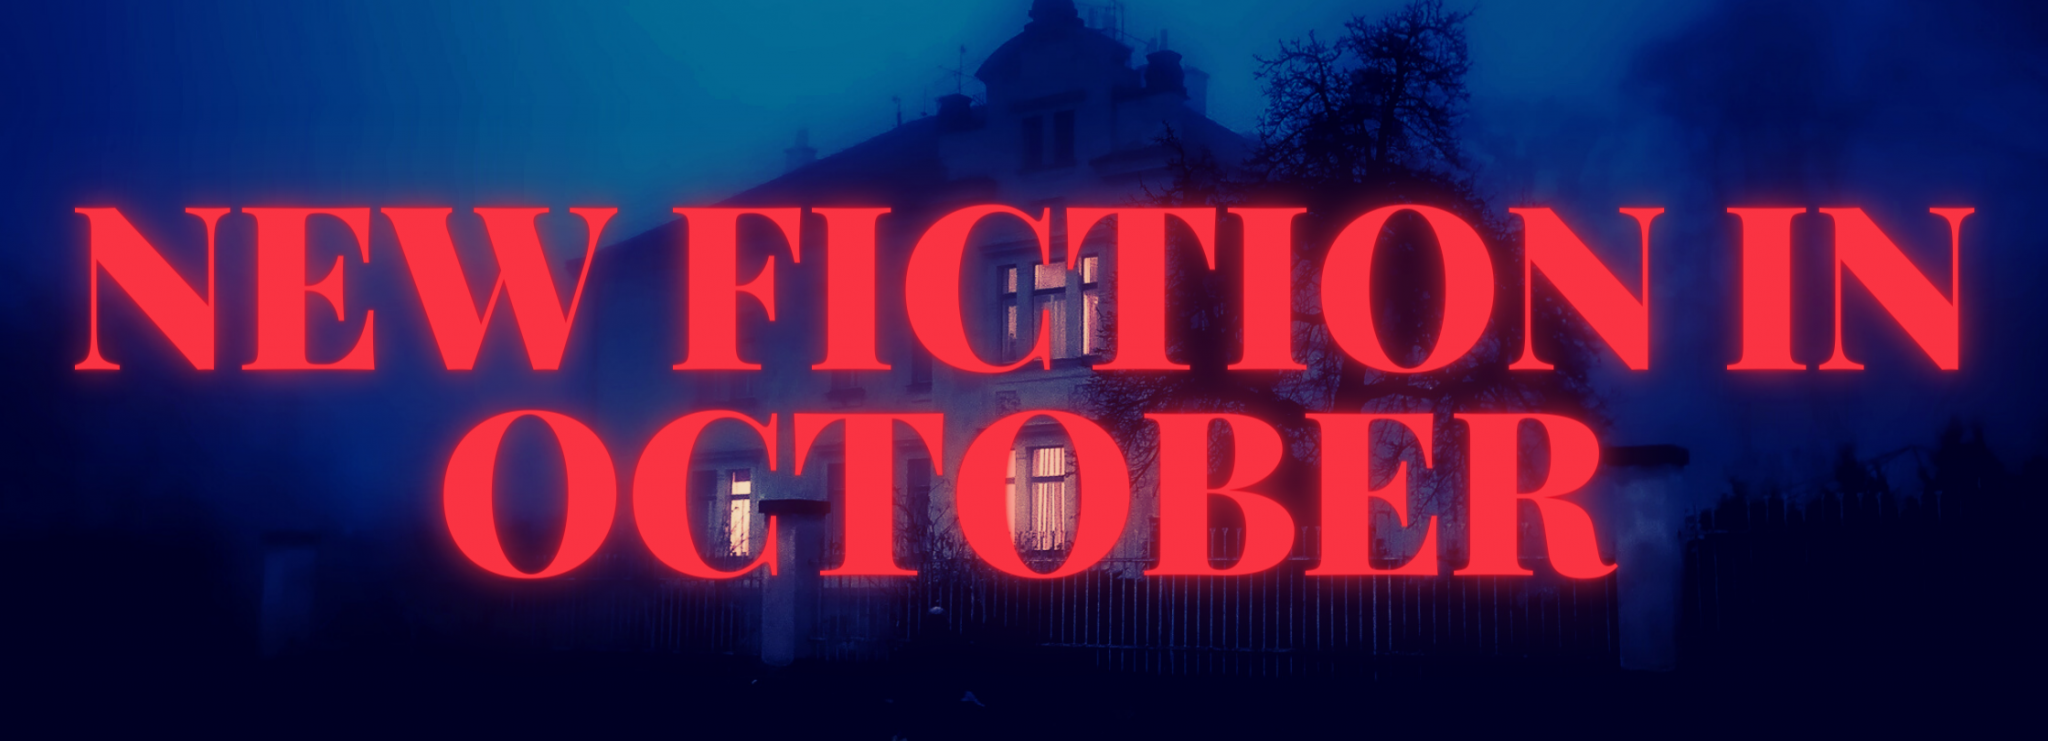 NEW FICTION IN OCTOBER